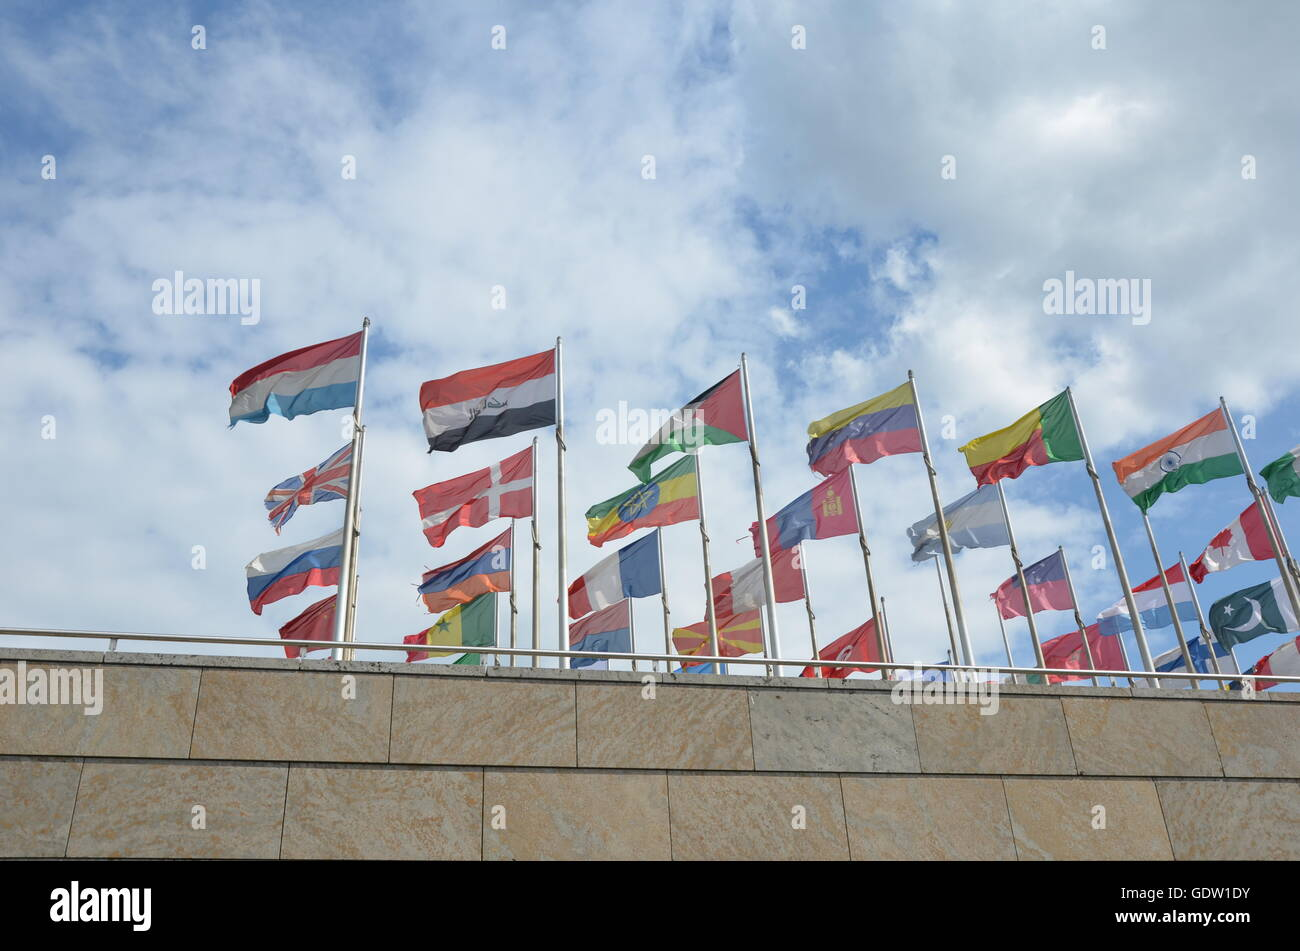 flag, governments, global, globe, organization, wind, outdoors, earth, waving, organized group, traditional culture, - Stock Image